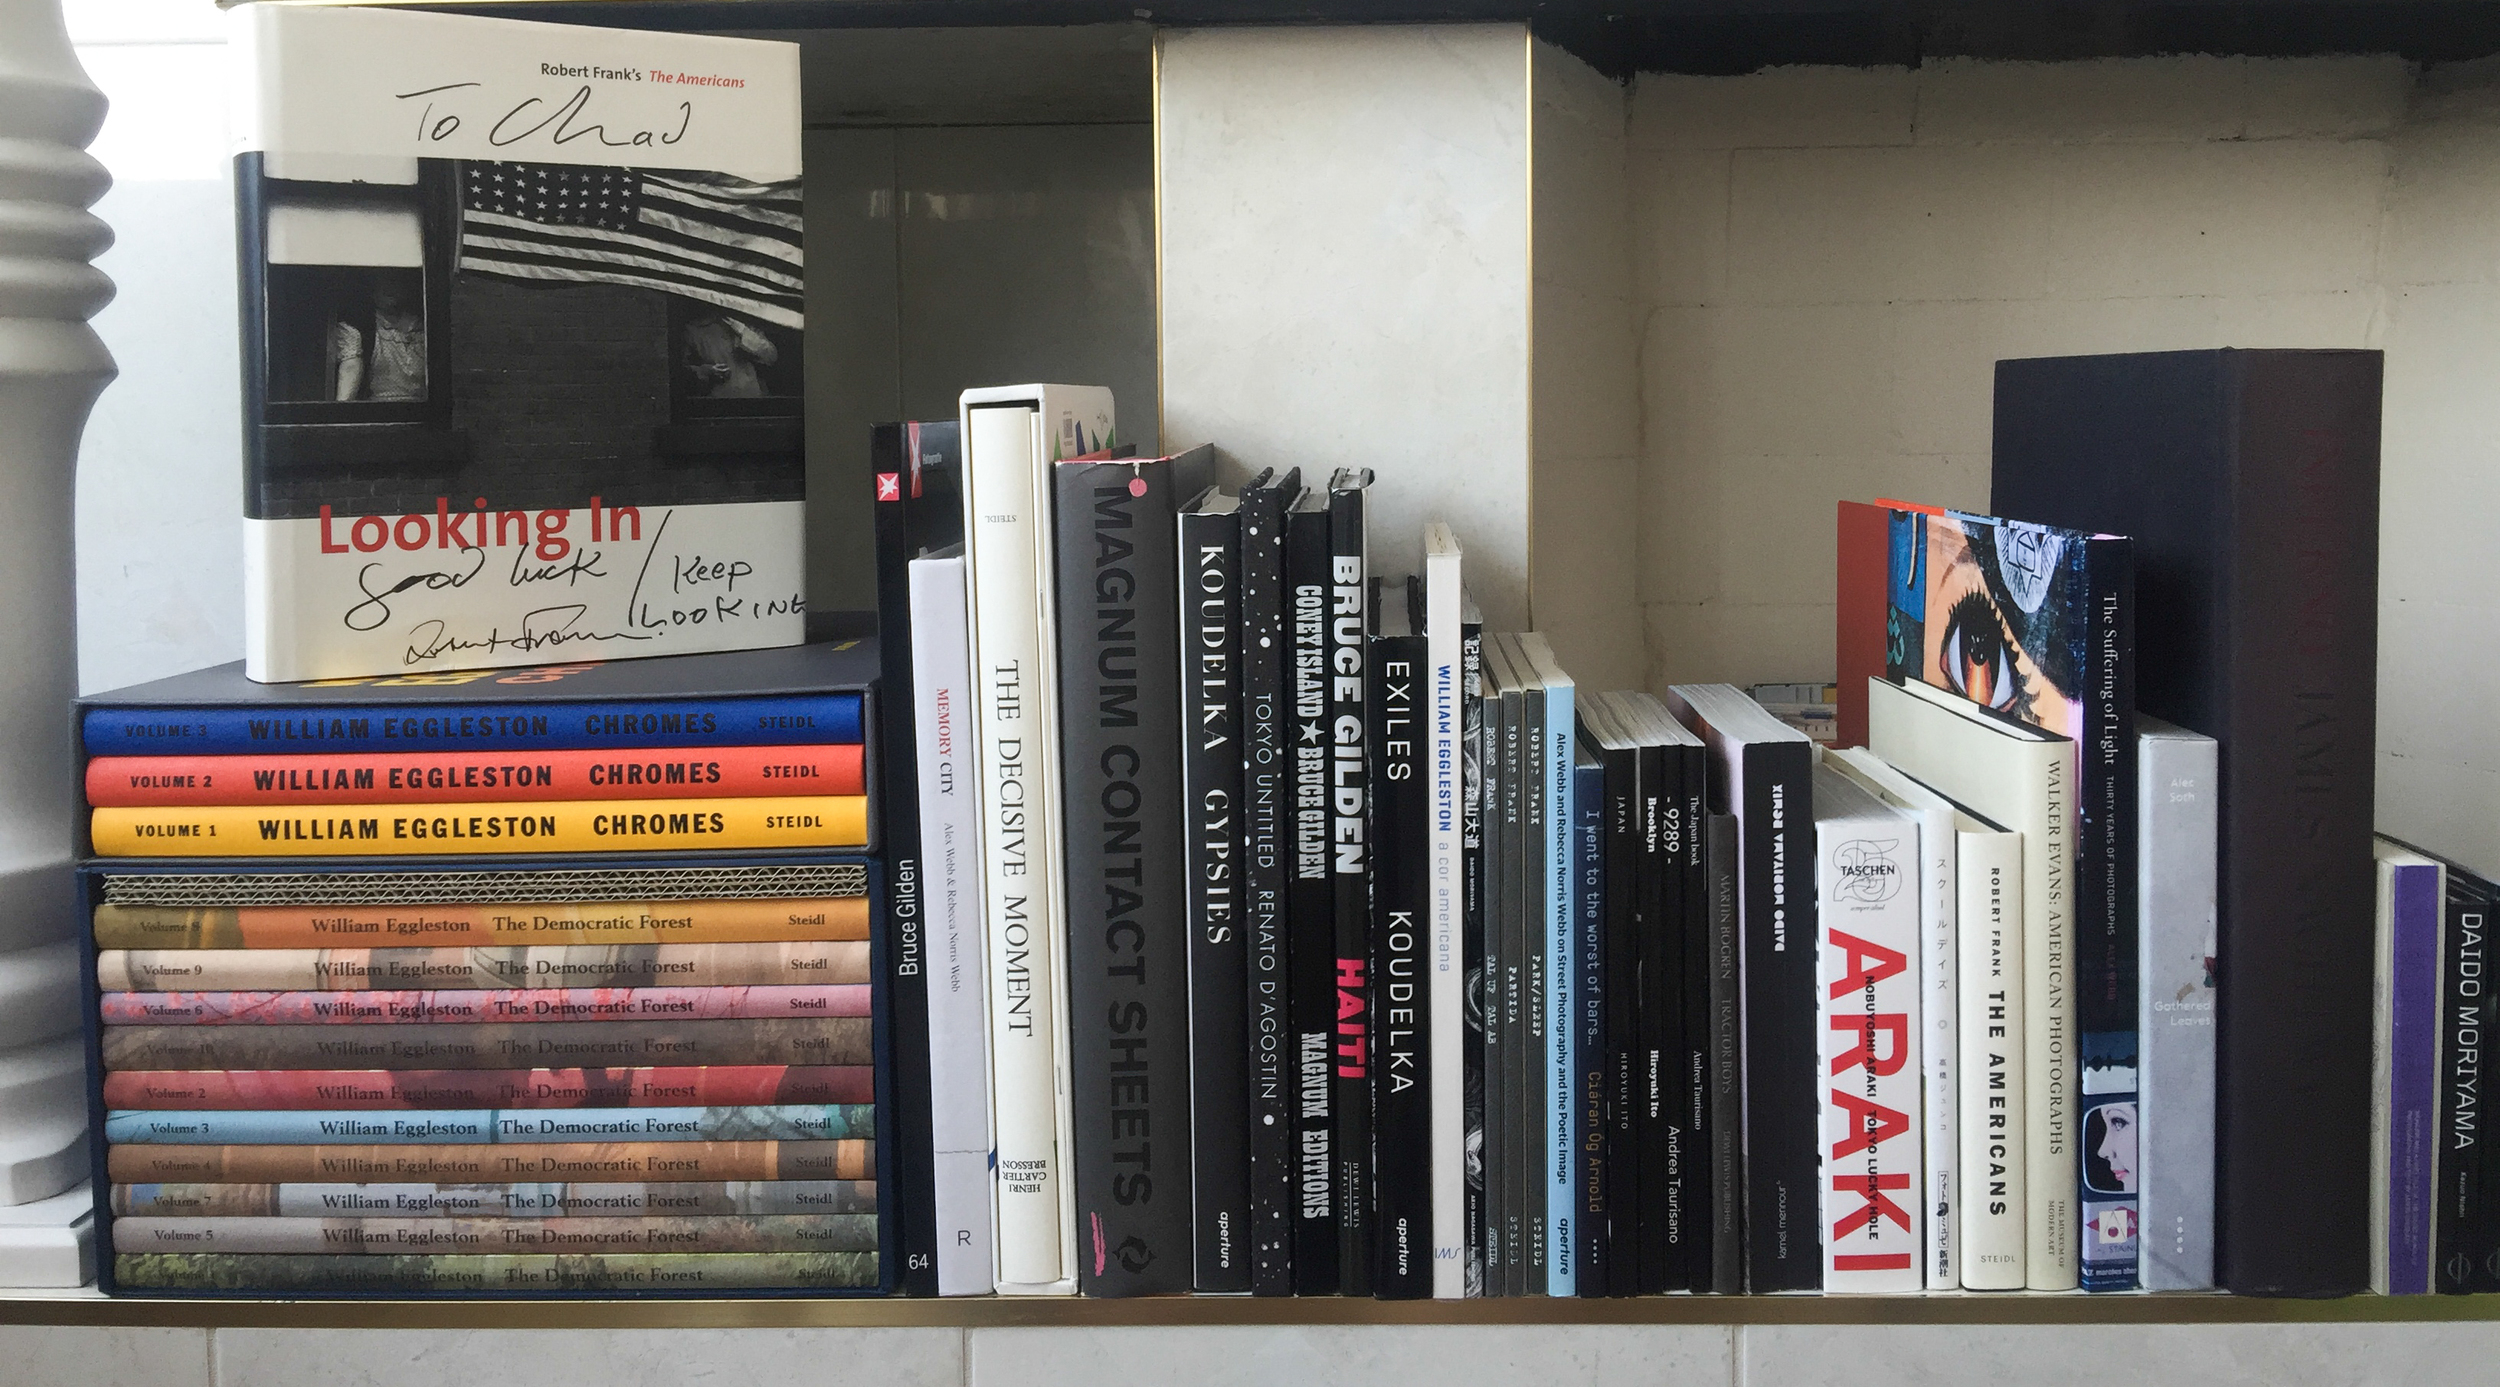 Chad Tobin 's documentary-focused photobook library.